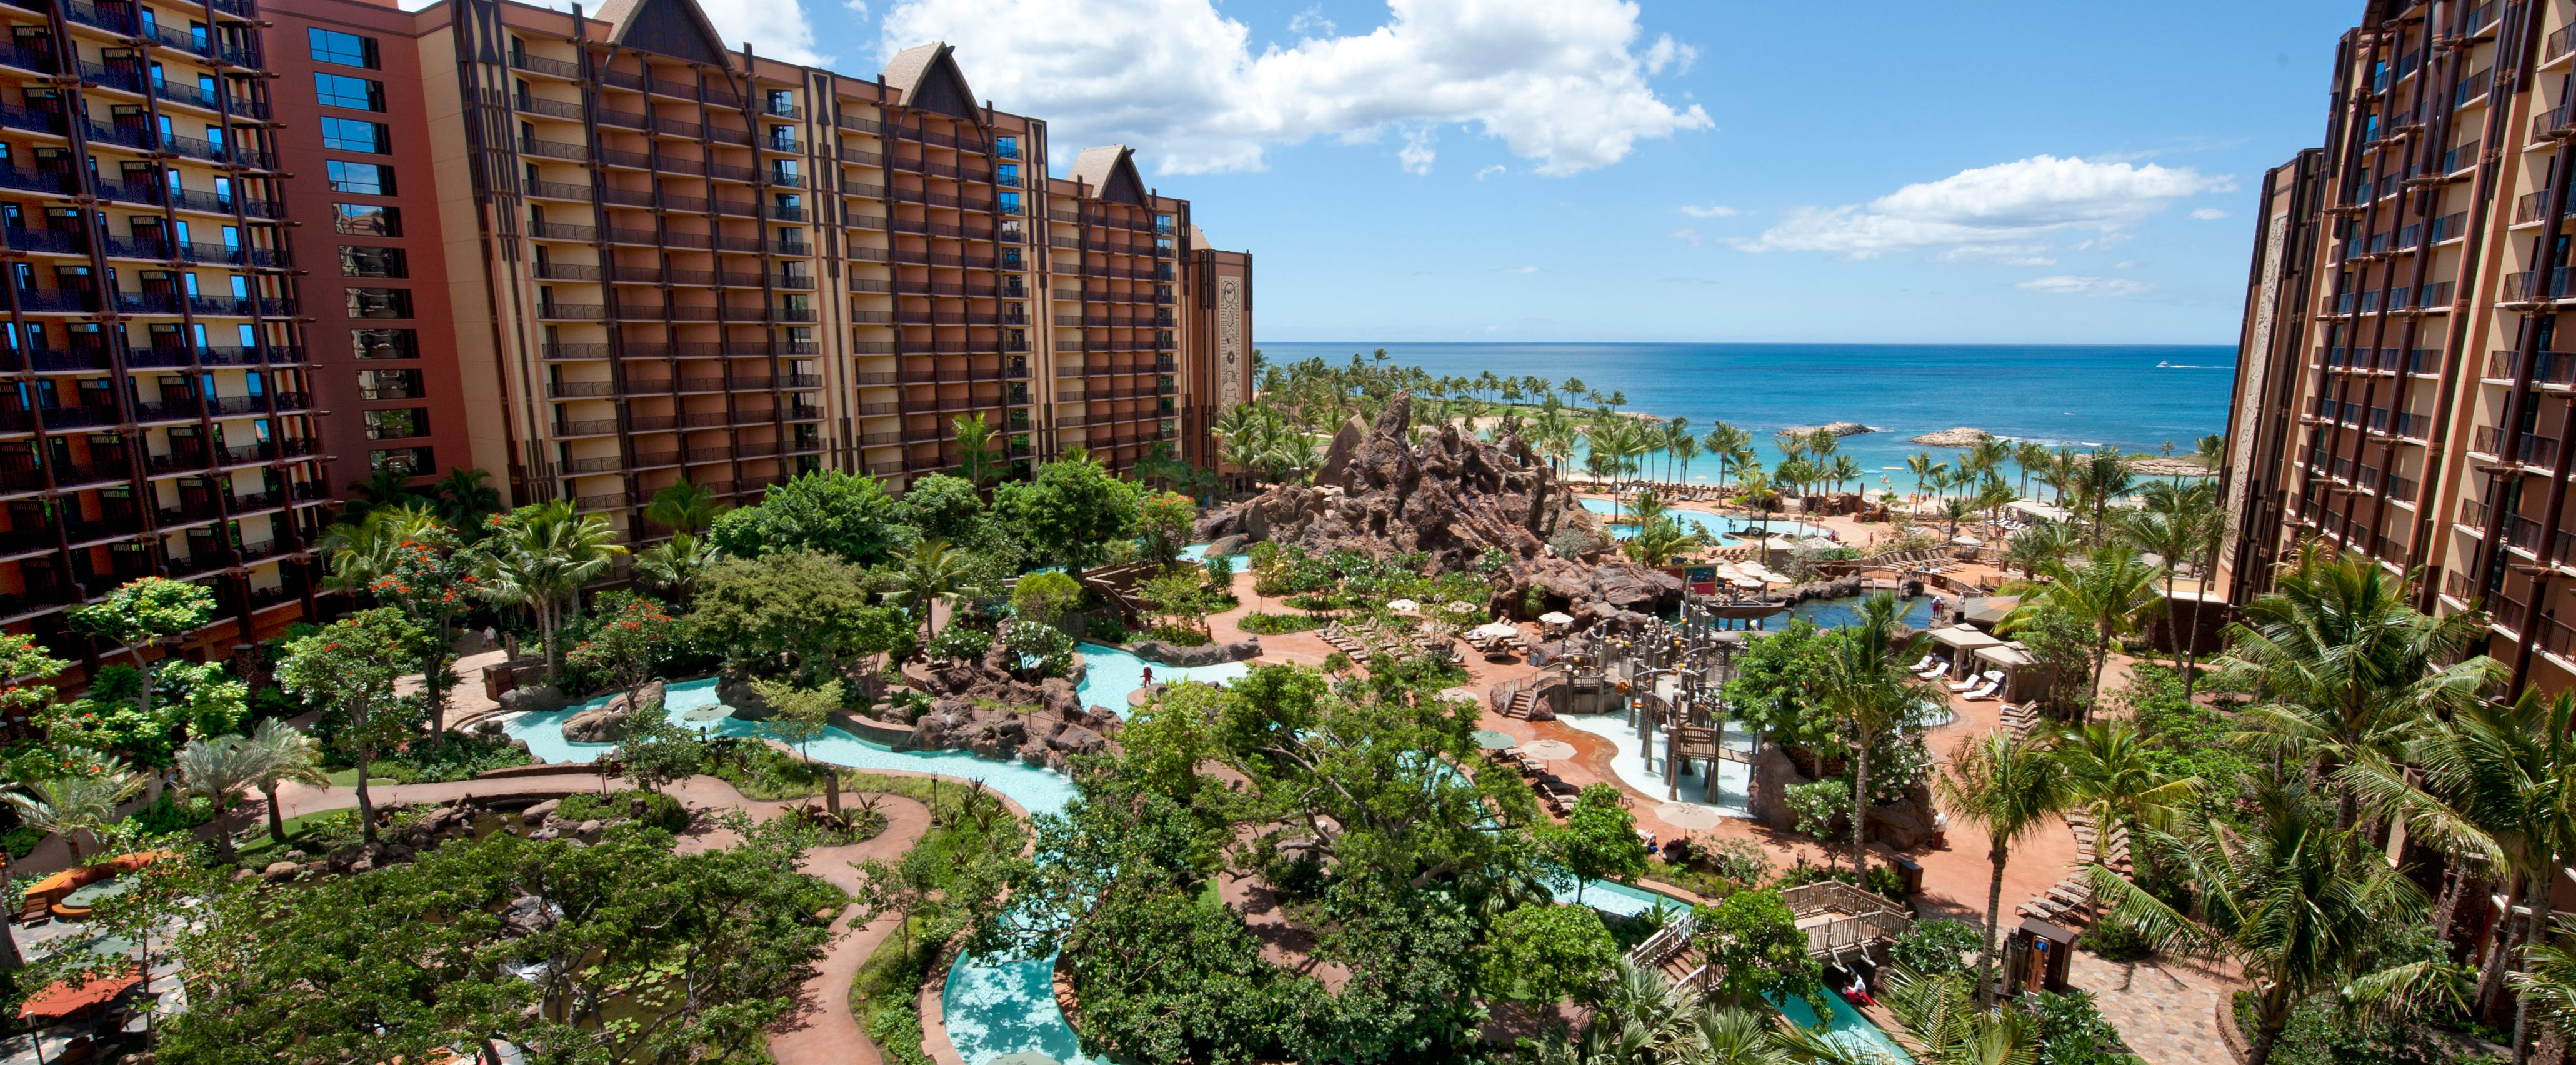 Multiple pools, waterslides and a lazy river can be found between the 2 towers of Aulani